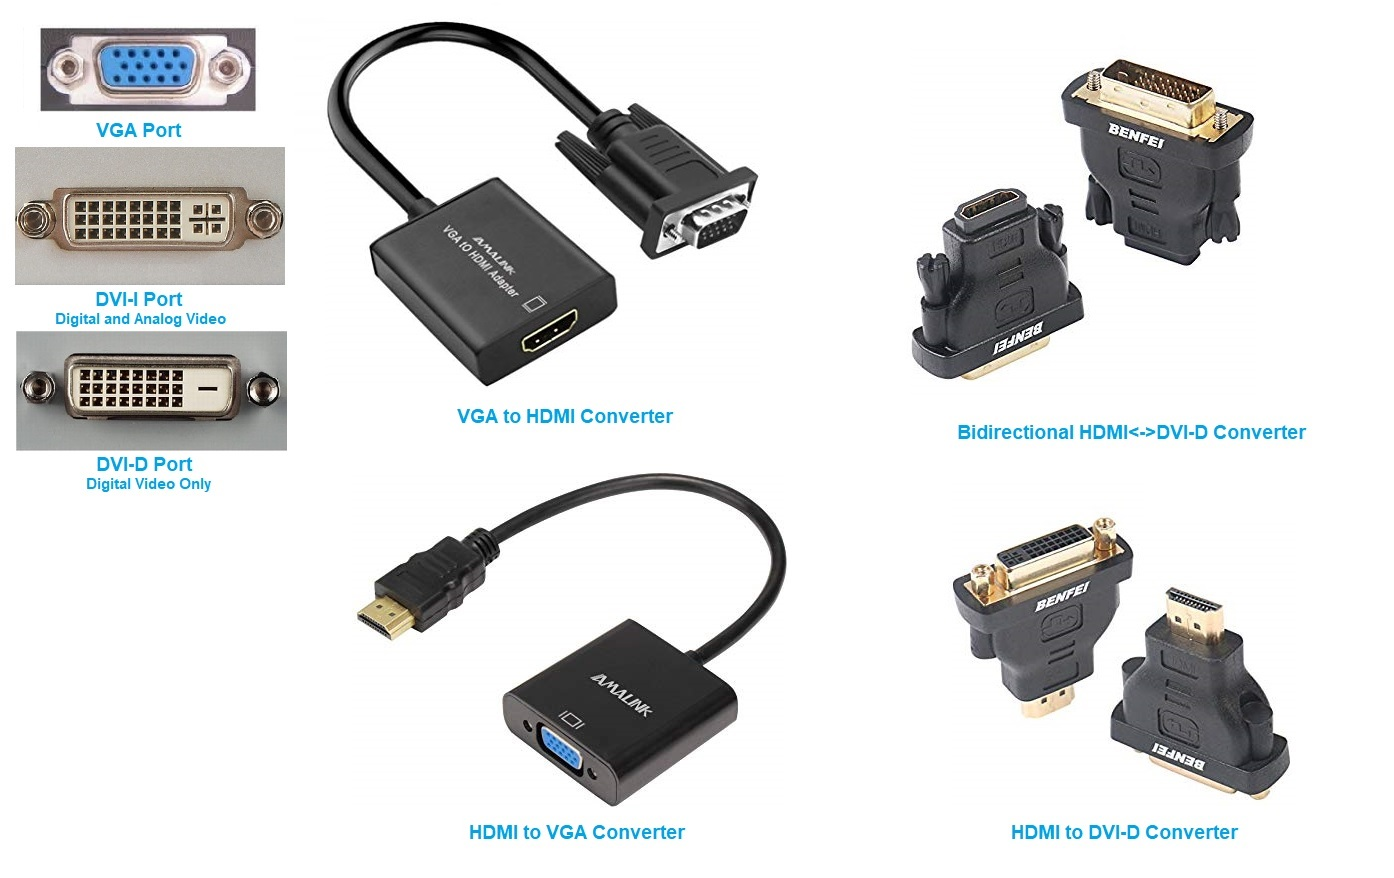 Computer Video Ports and Converters